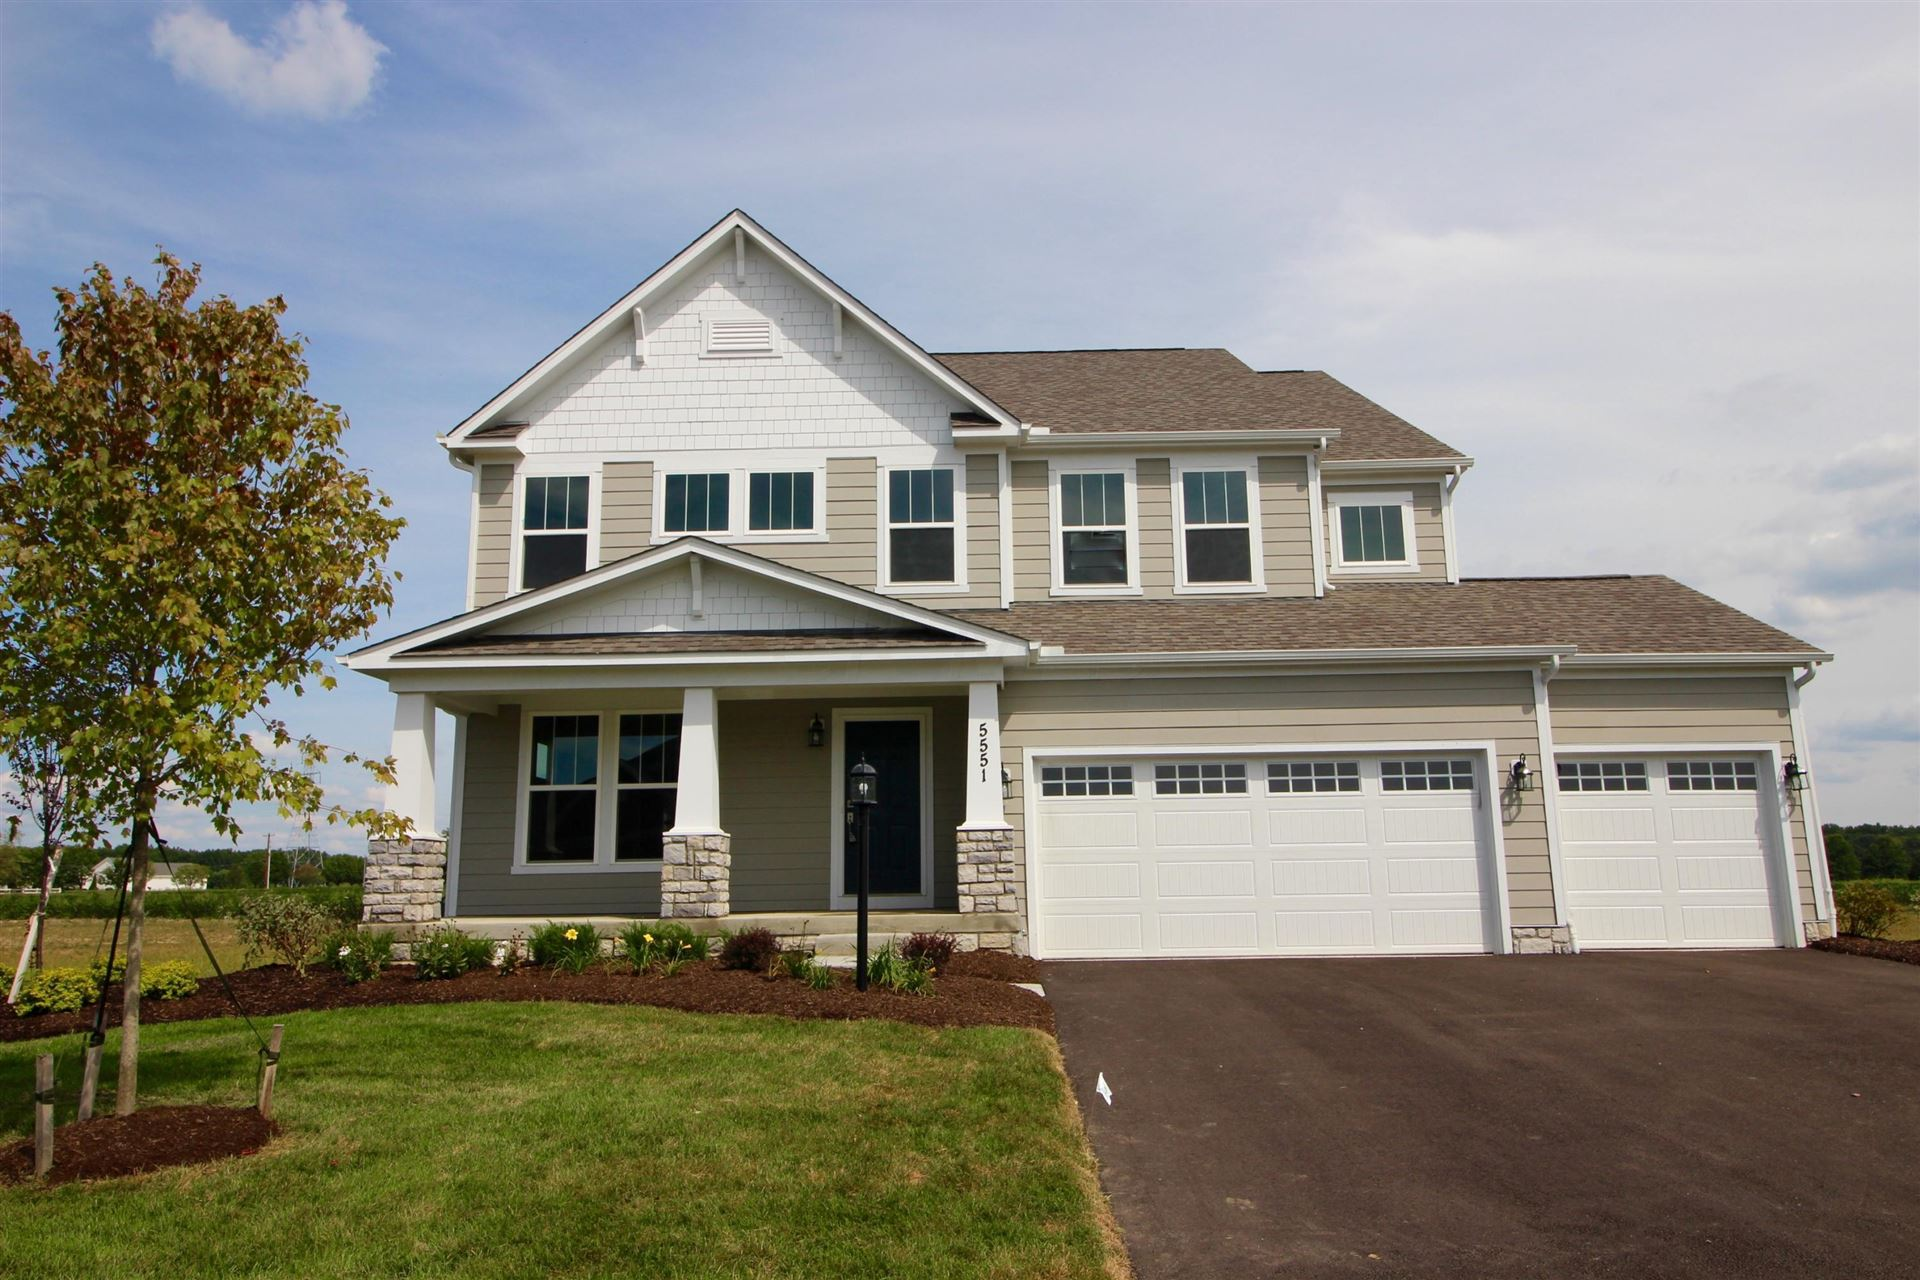 5551 Whitestone Trace, Powell, OH 43065 - #: 219045833